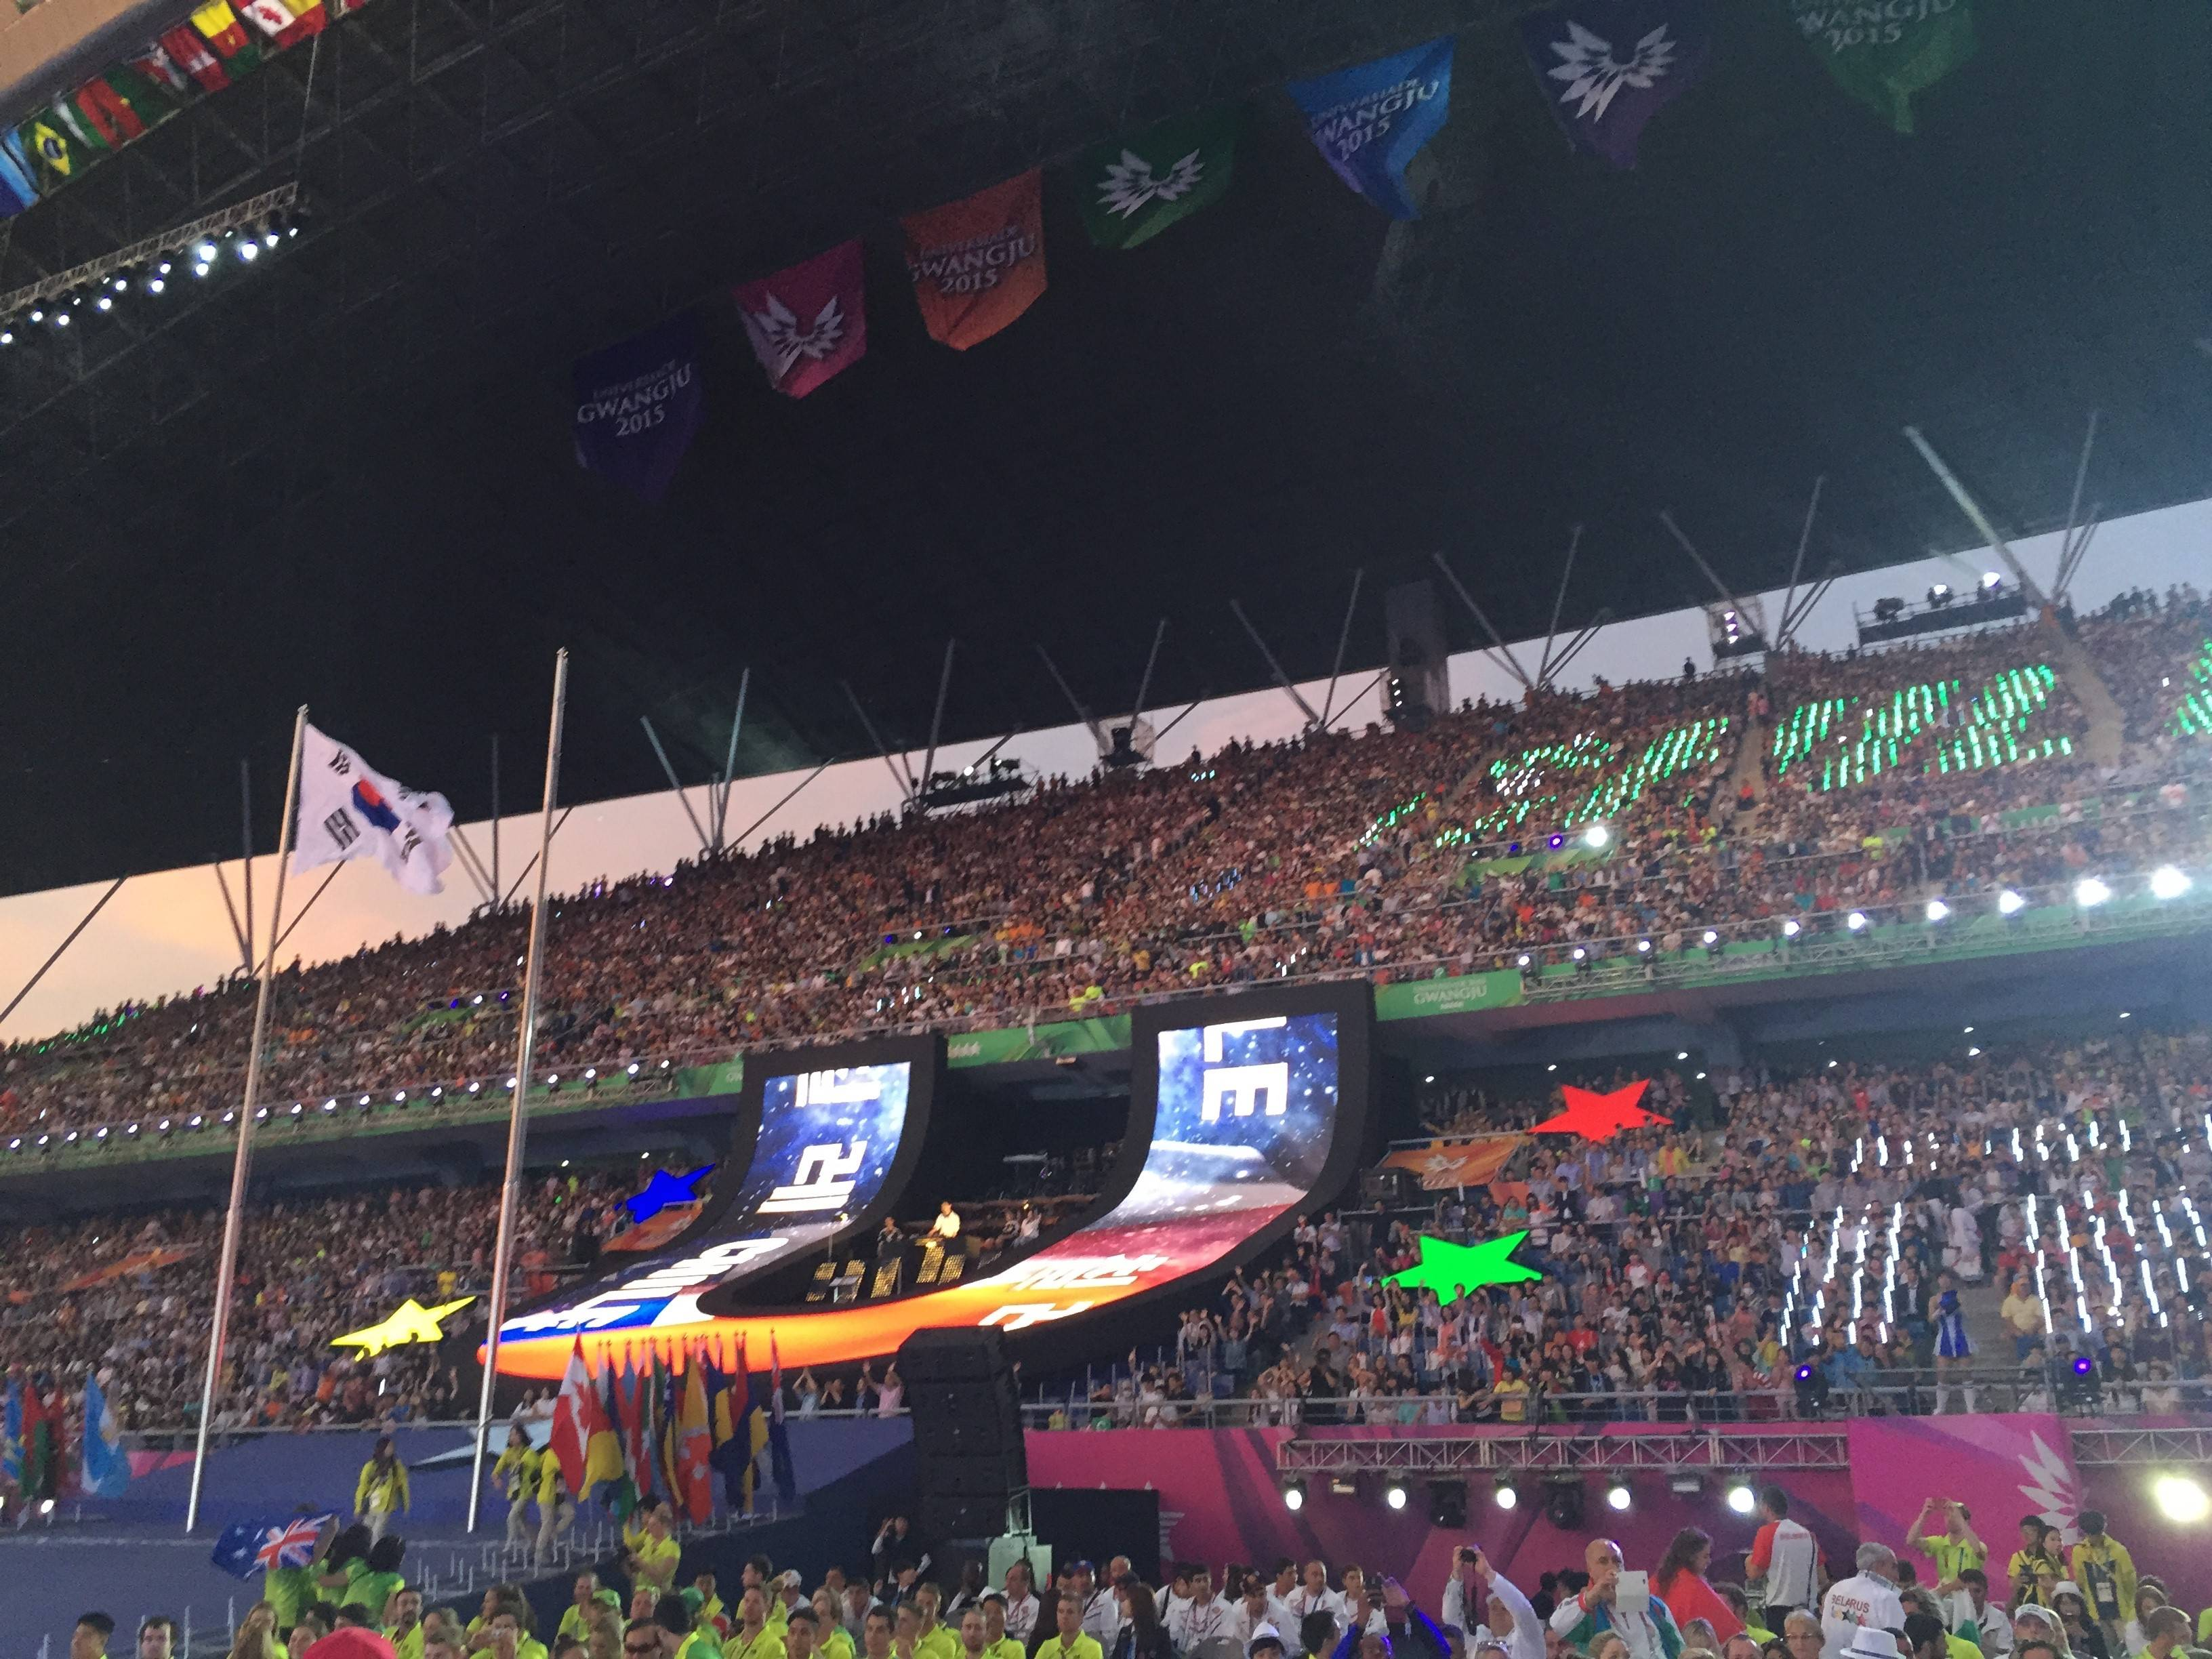 Inside the opening ceremony.